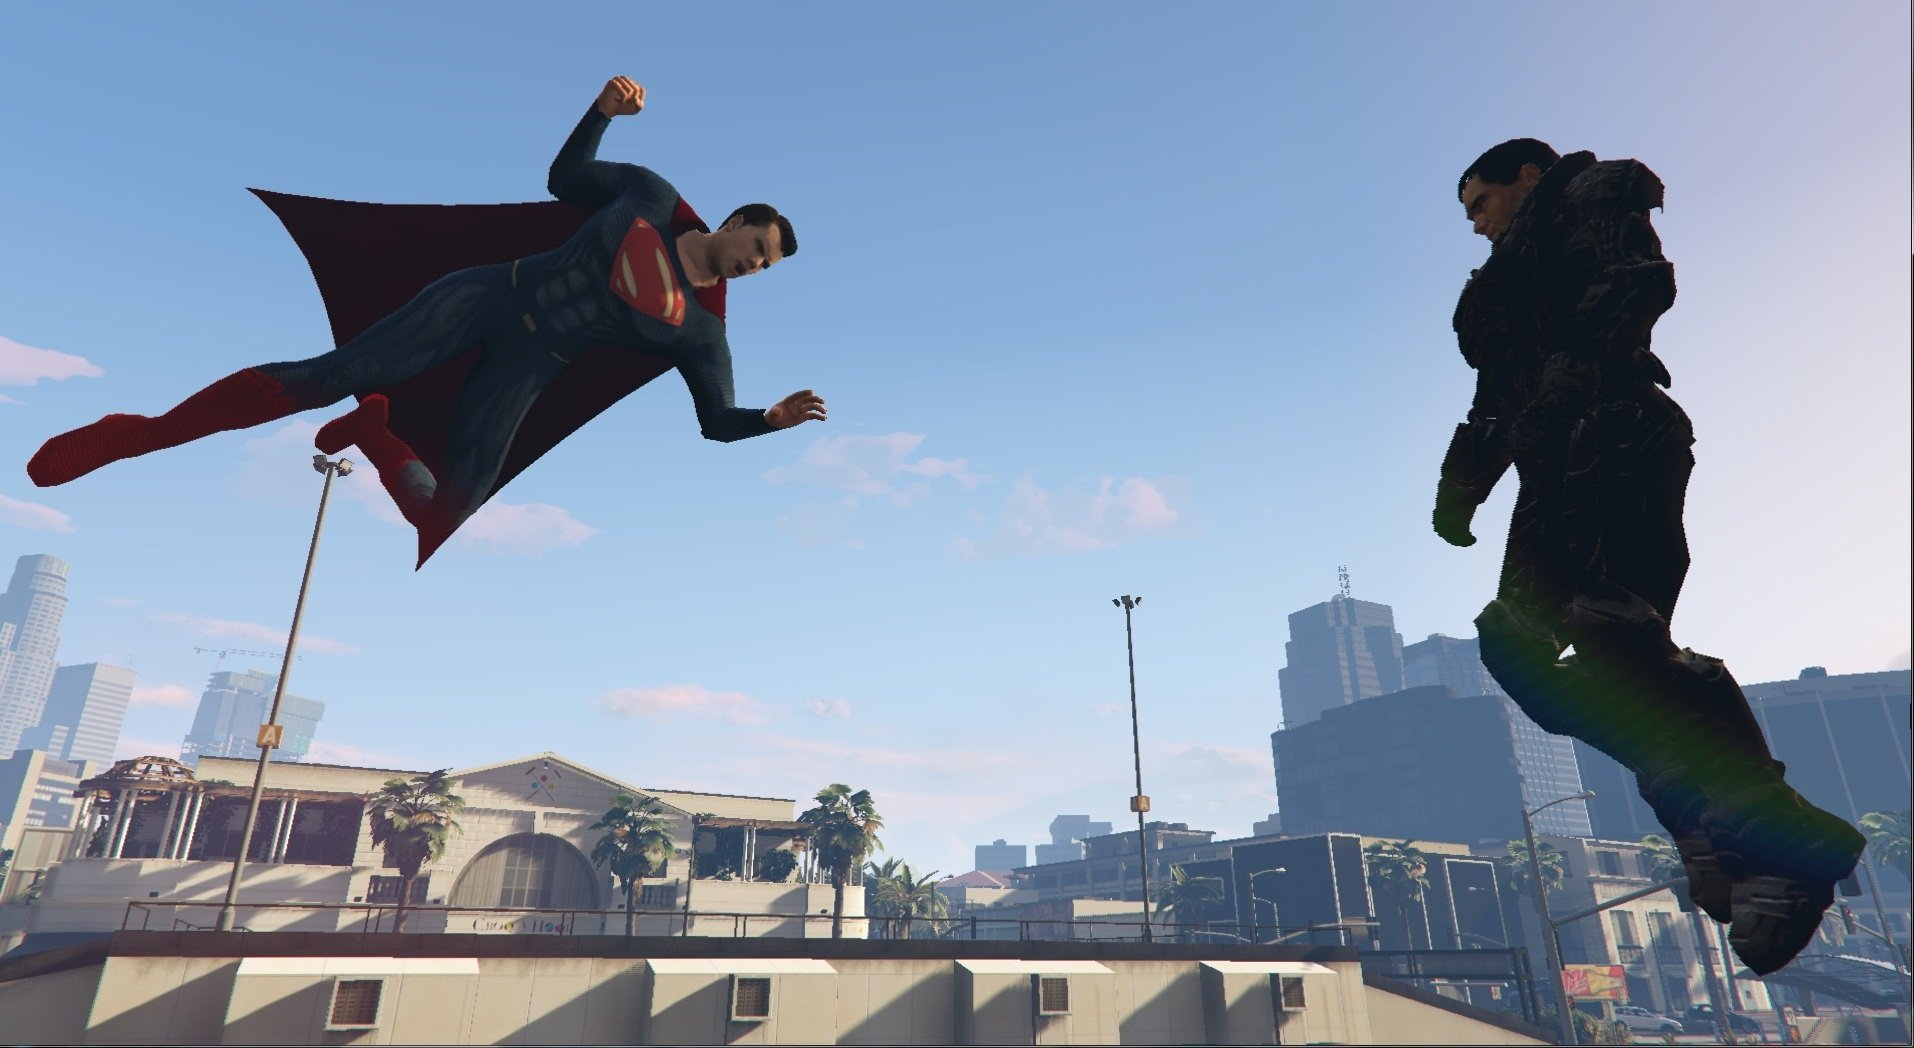 Superman script mod - GTA5